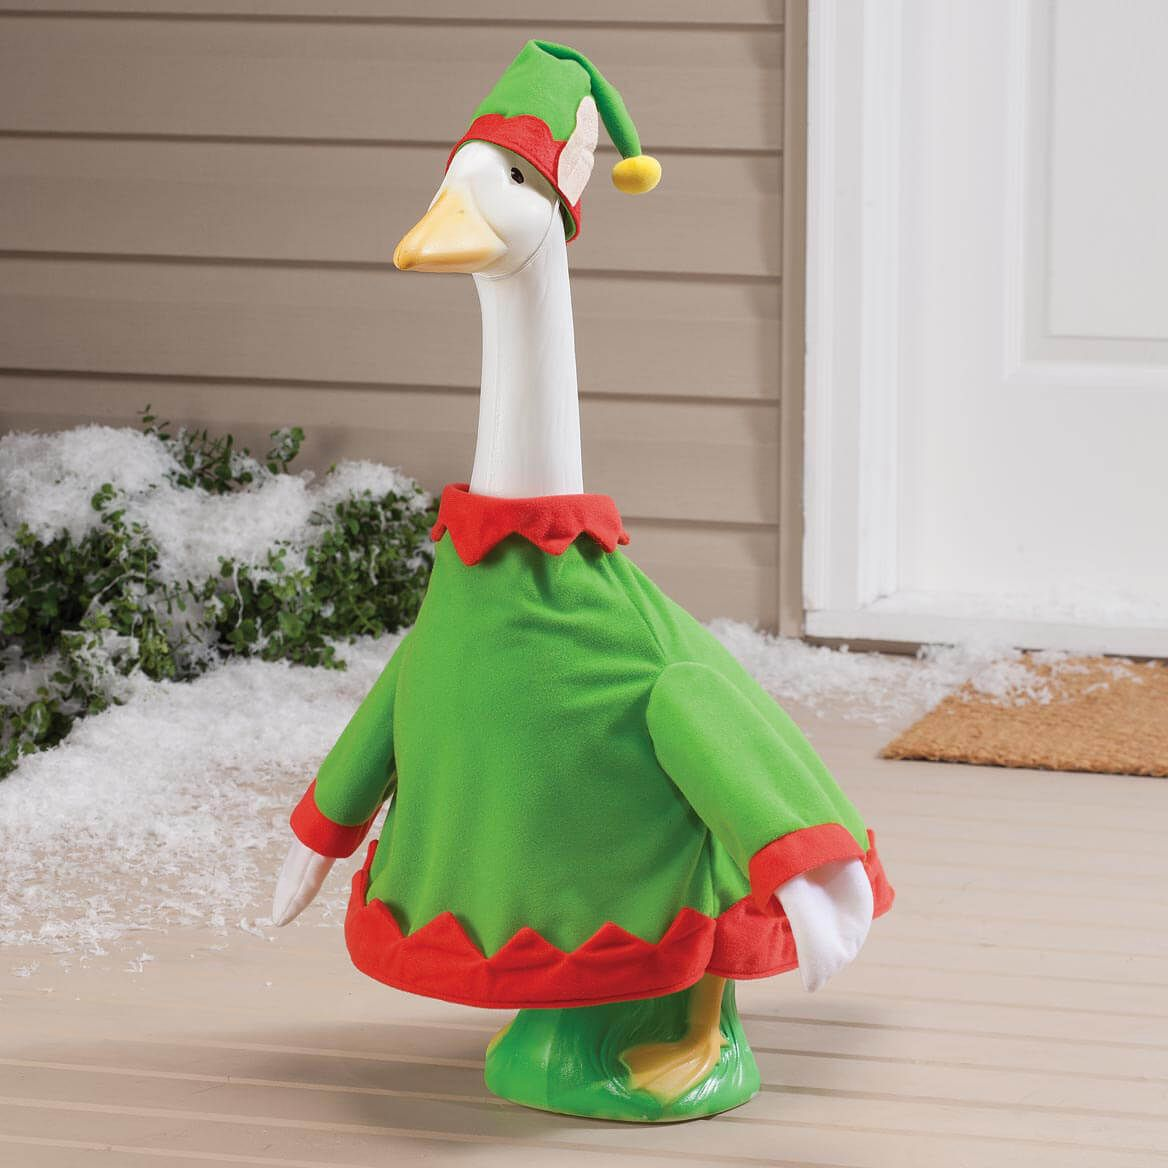 Elf Goose Outfit Goose Costume Lawn Goose Miles Kimball Goose Costume Goose Clothes Porch Goose